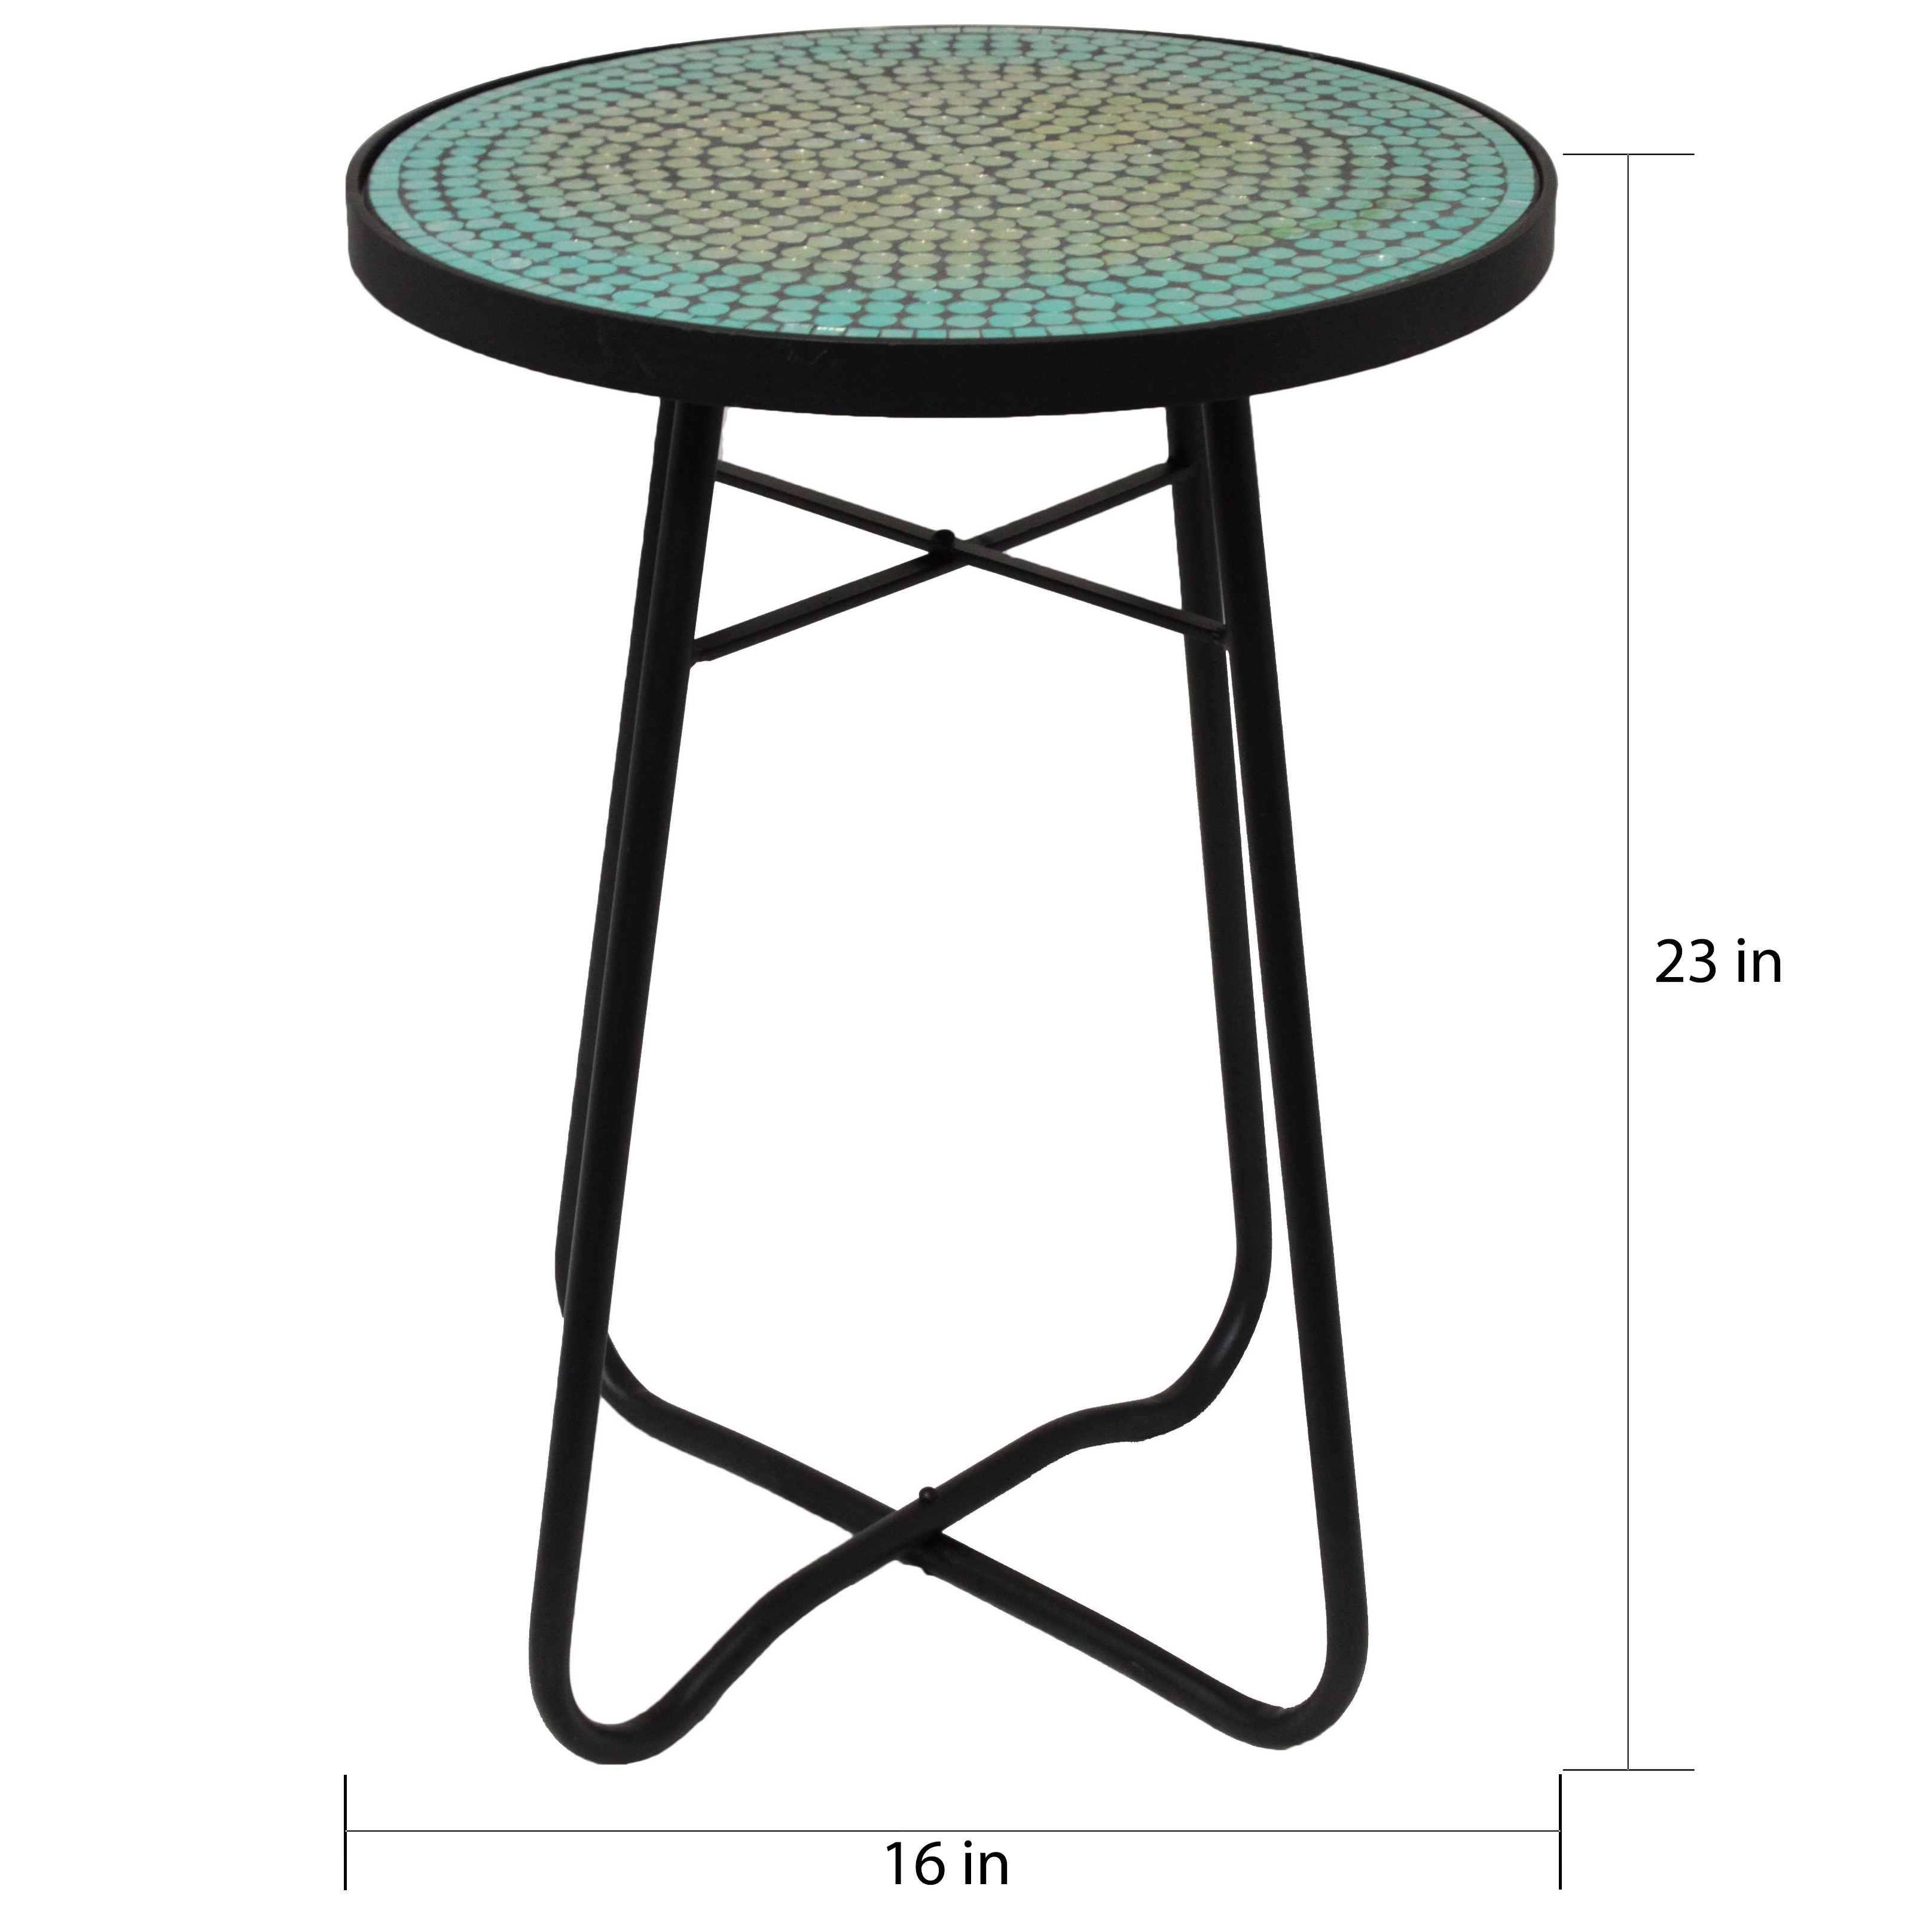 patio black side table wood glass top round outdoor tables modern ideas accent inch tablecloth pier imports rugs white lamp tall console target gold wicker set metal wooden legs